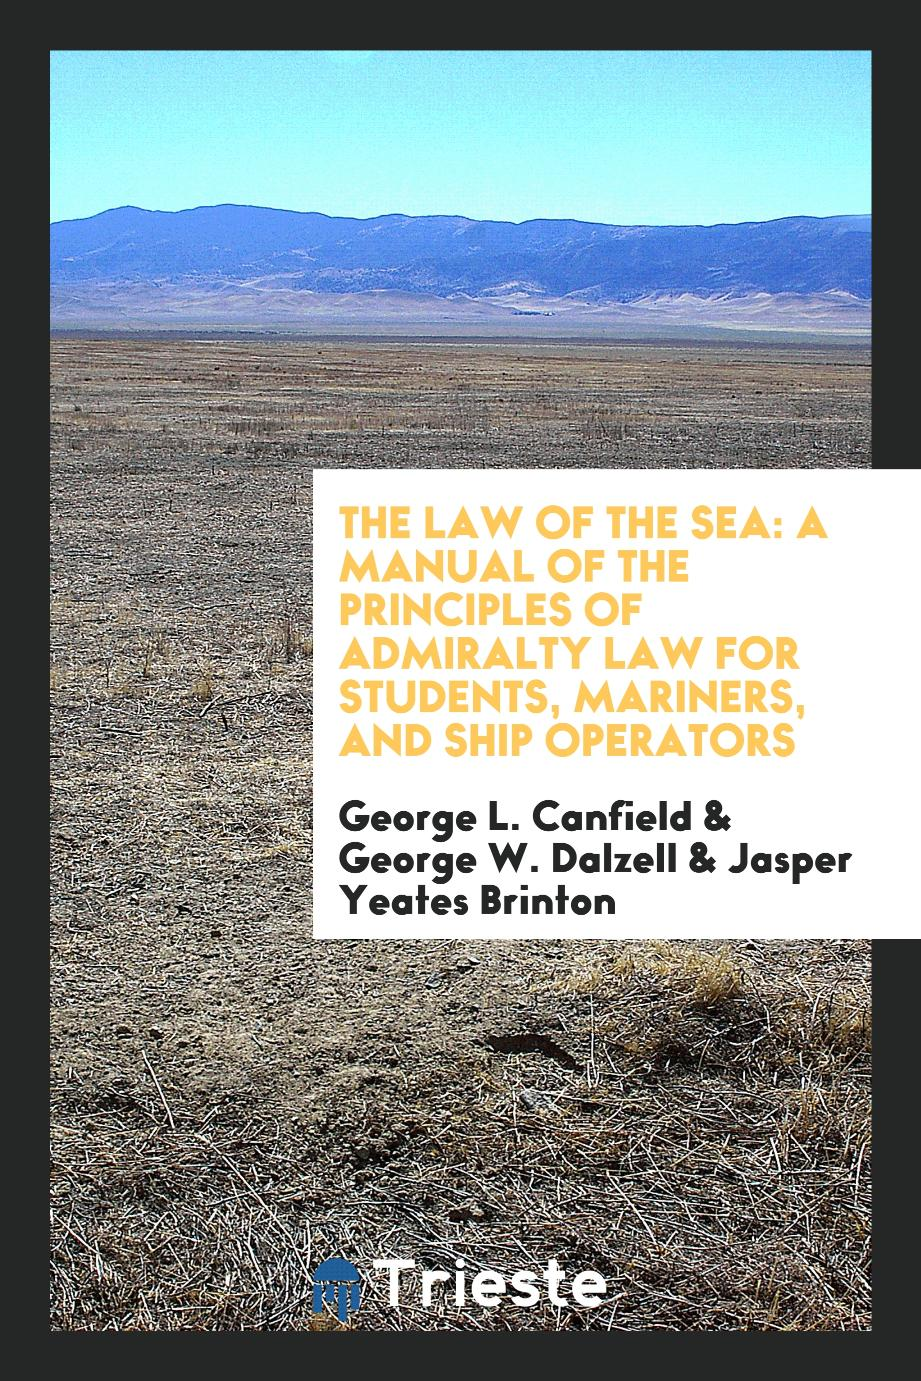 The Law of the Sea: A Manual of the Principles of Admiralty Law for Students, Mariners, and Ship Operators